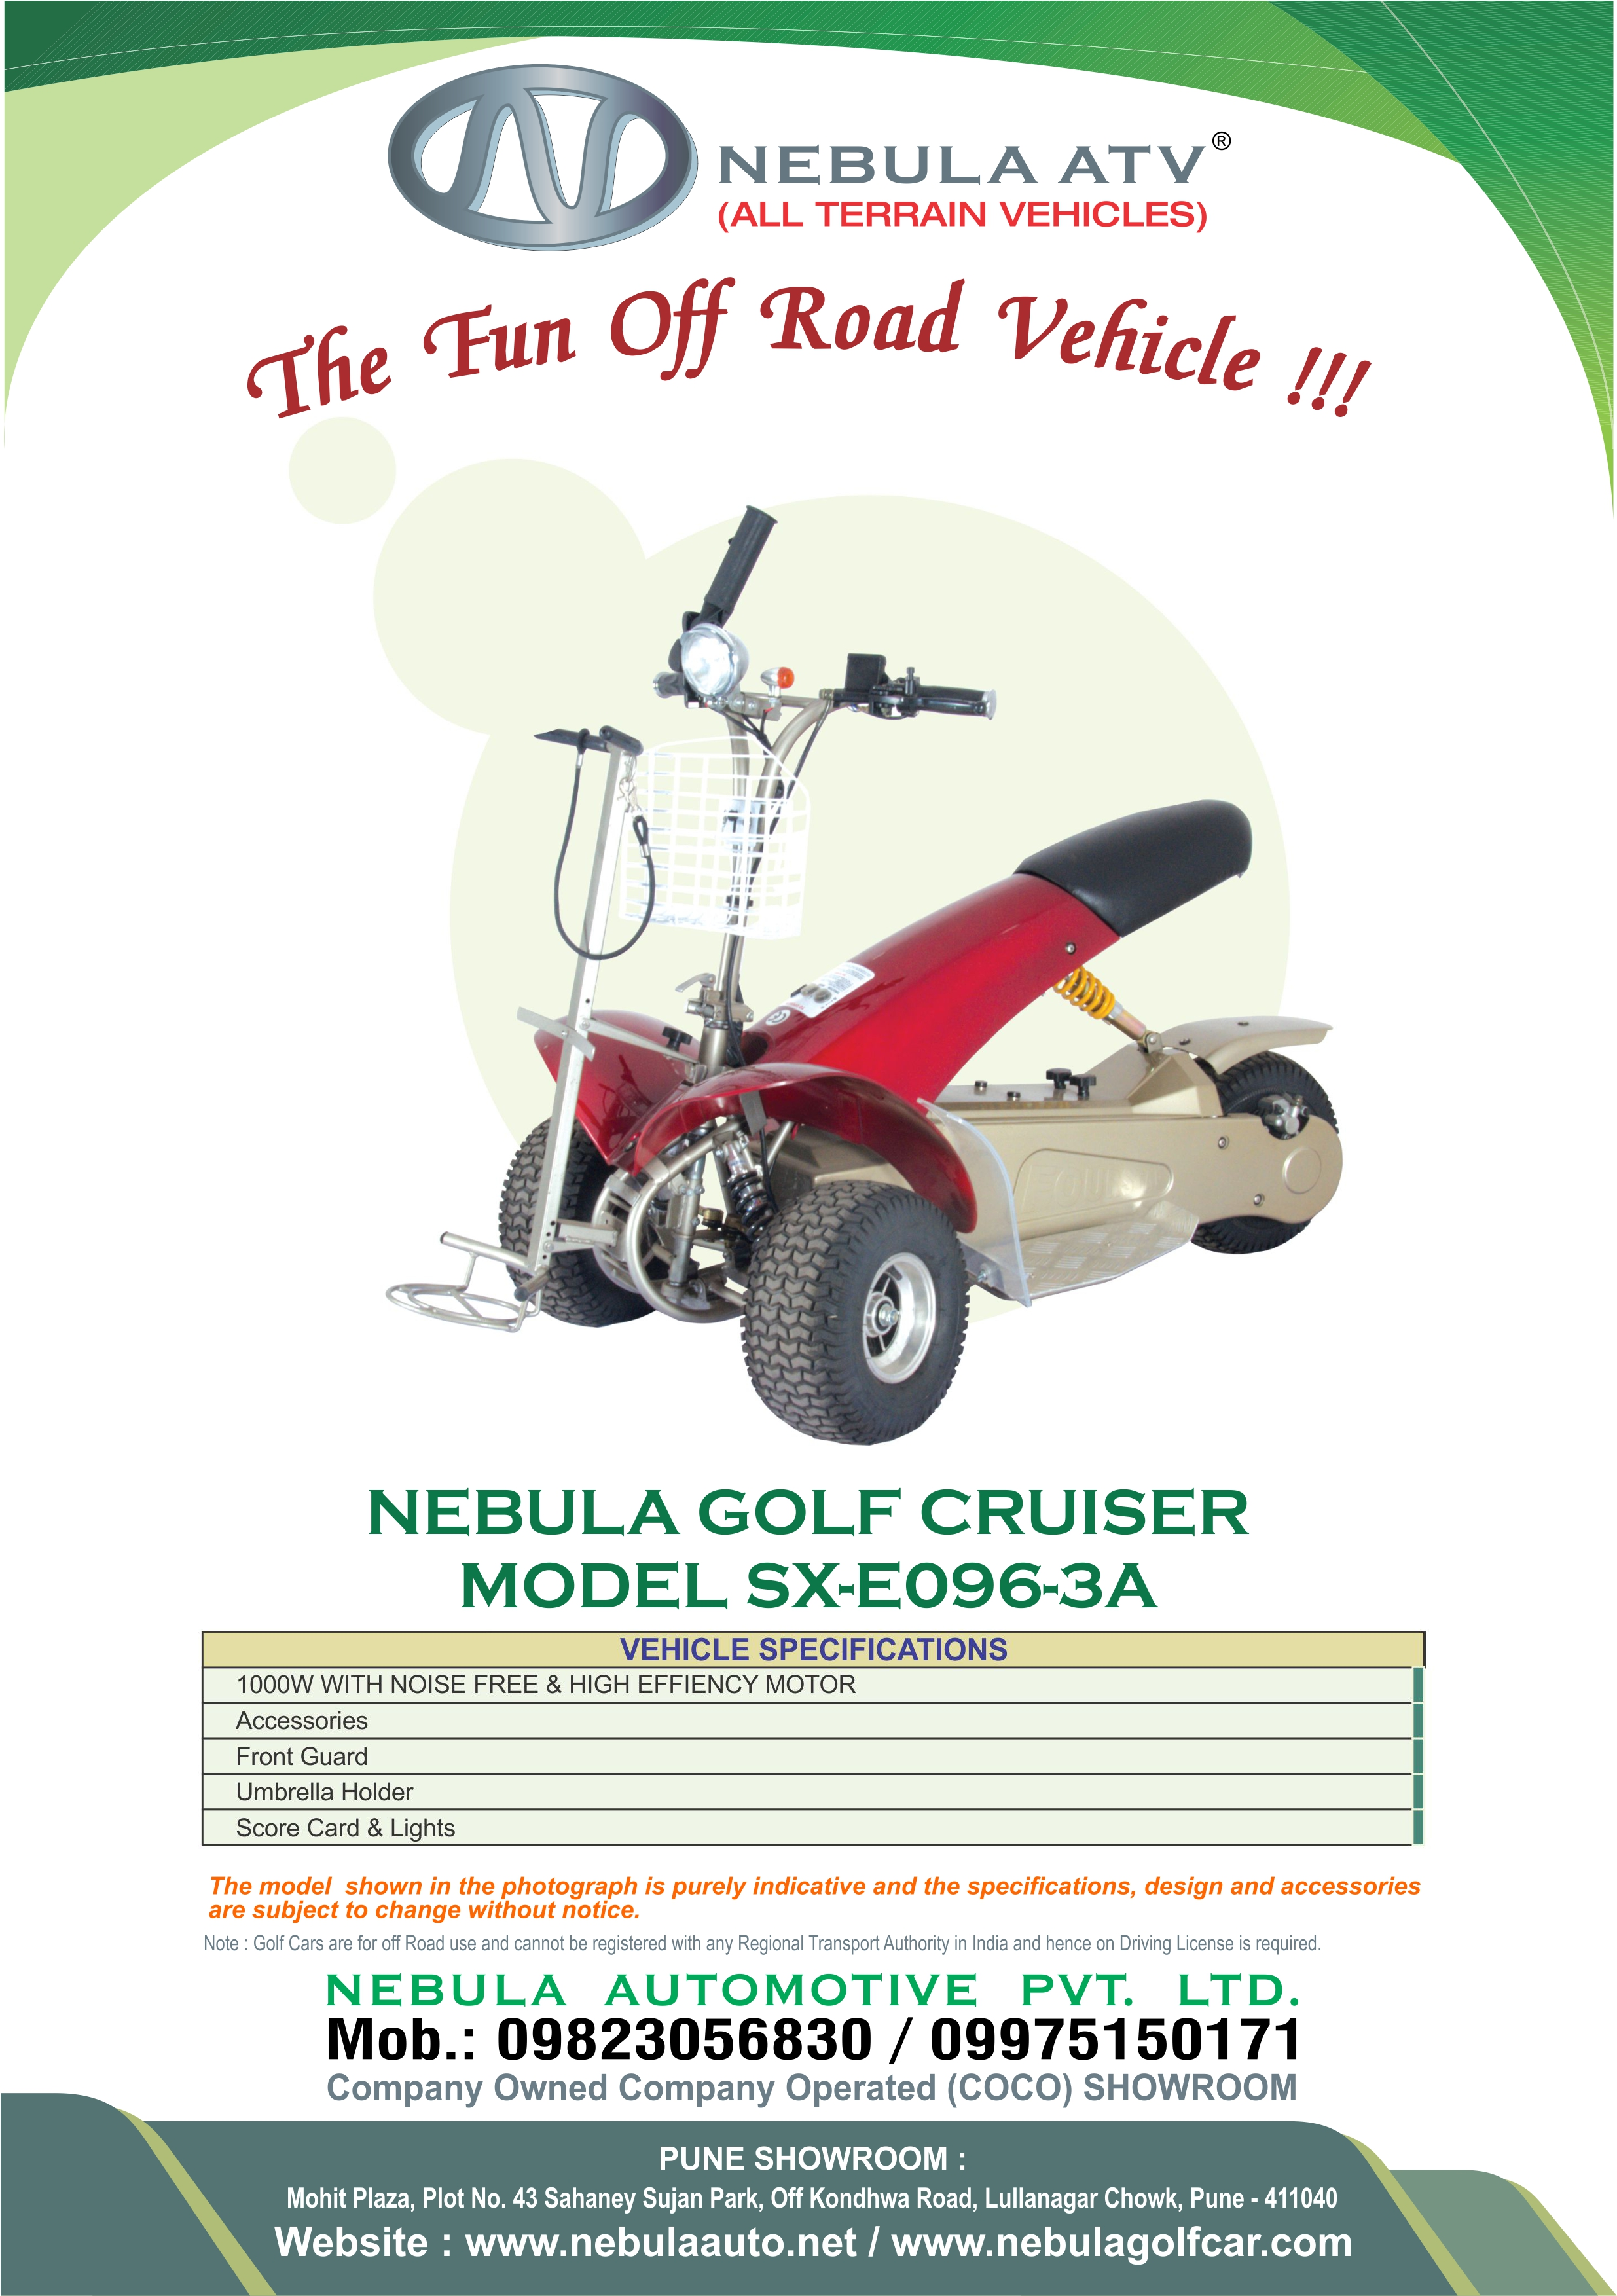 Manufacturers Of Agriculture Tractor, And ATVs, All Terrain Vehicle on umbrella holder golf caddy, basket for golf cart, stand for golf cart, cup holder for golf cart, linksman golf cart, umbrella holders for shopping cart, battery for golf cart, cover for golf cart, ball holder for golf cart, scorecard holder for golf cart, cooler holder for golf cart, charger for golf cart, bag holder for golf cart, flag holder for golf cart, gps holder for golf cart, storage for golf cart, umbrella holders for home,